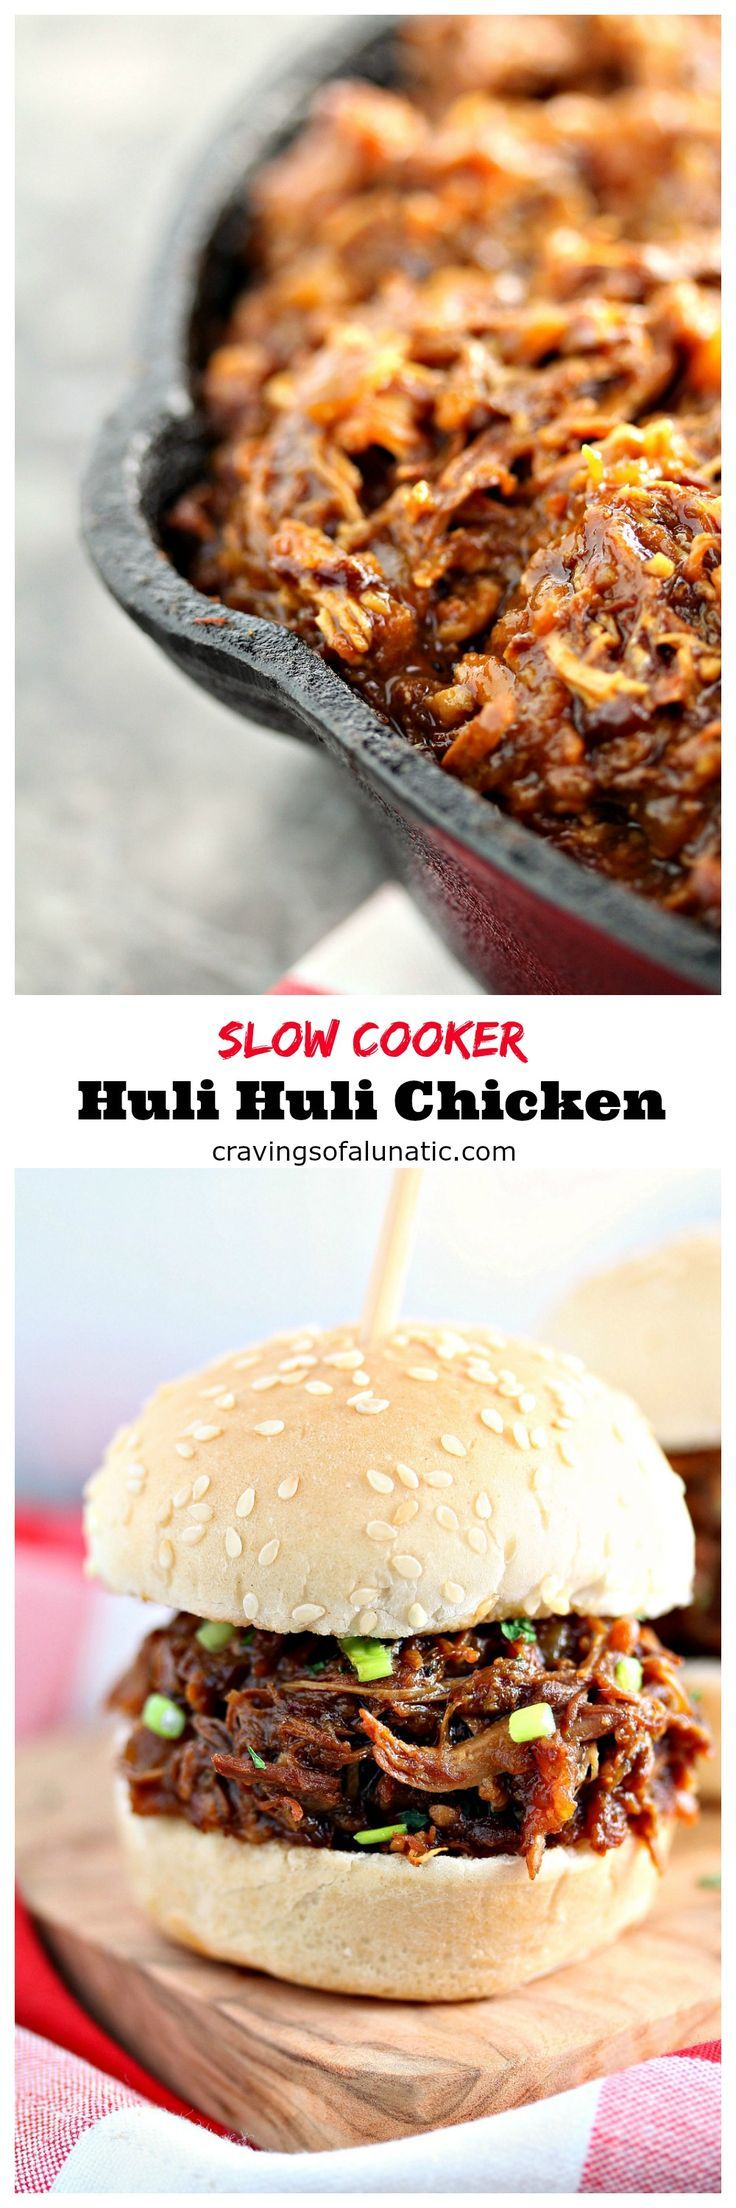 Slow Cooker Huli Huli Chicken from http://cravingsofalunatic.com- This recipe is the…